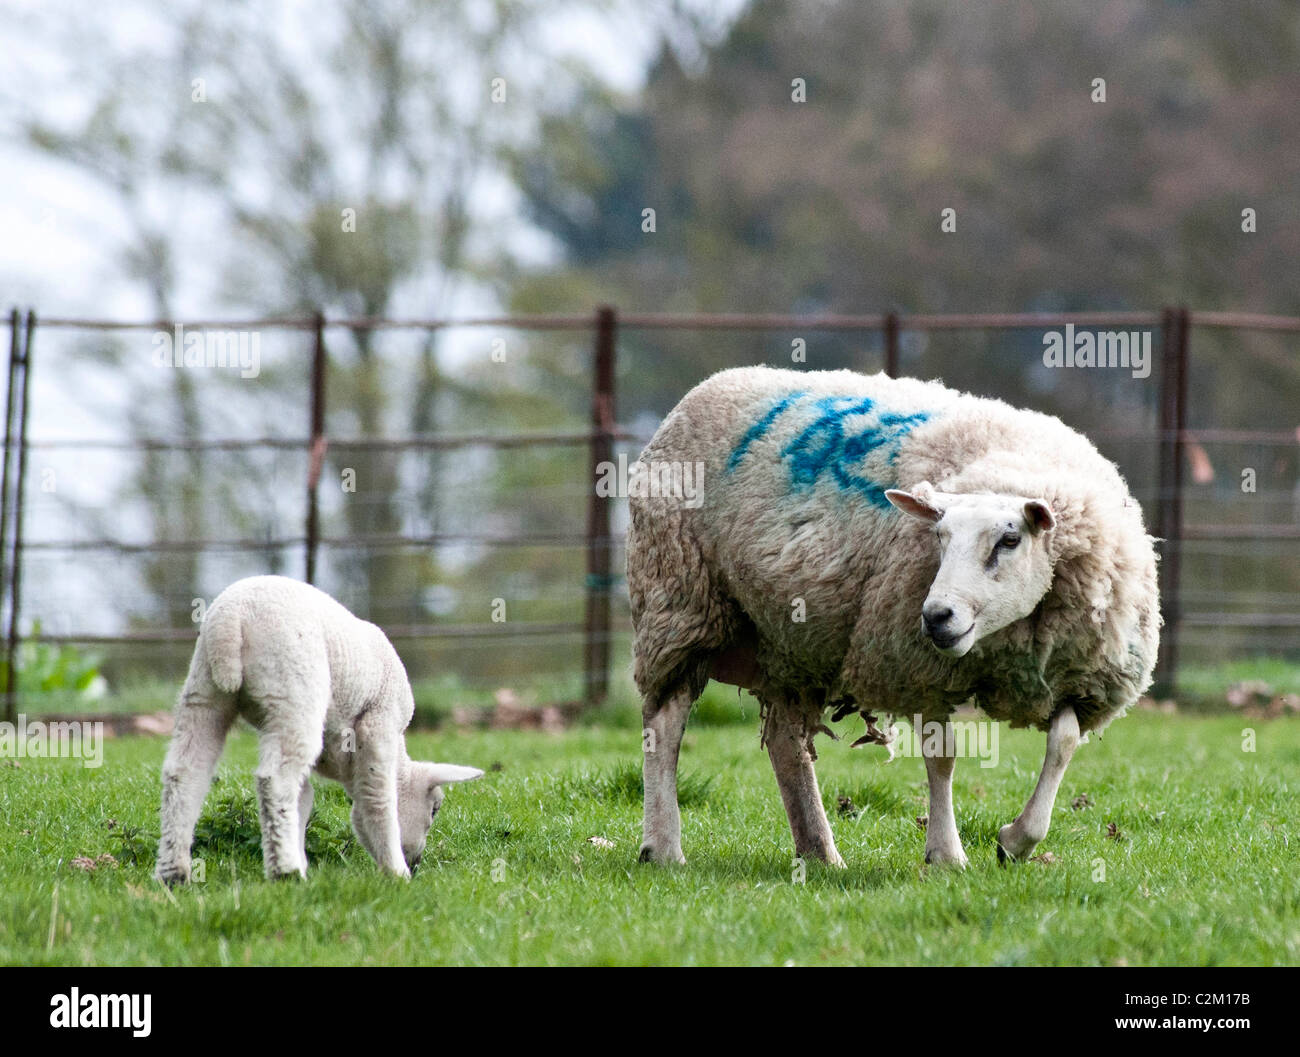 Mother sheep, ewe, bleating to her young lamb in a field - Stock Image